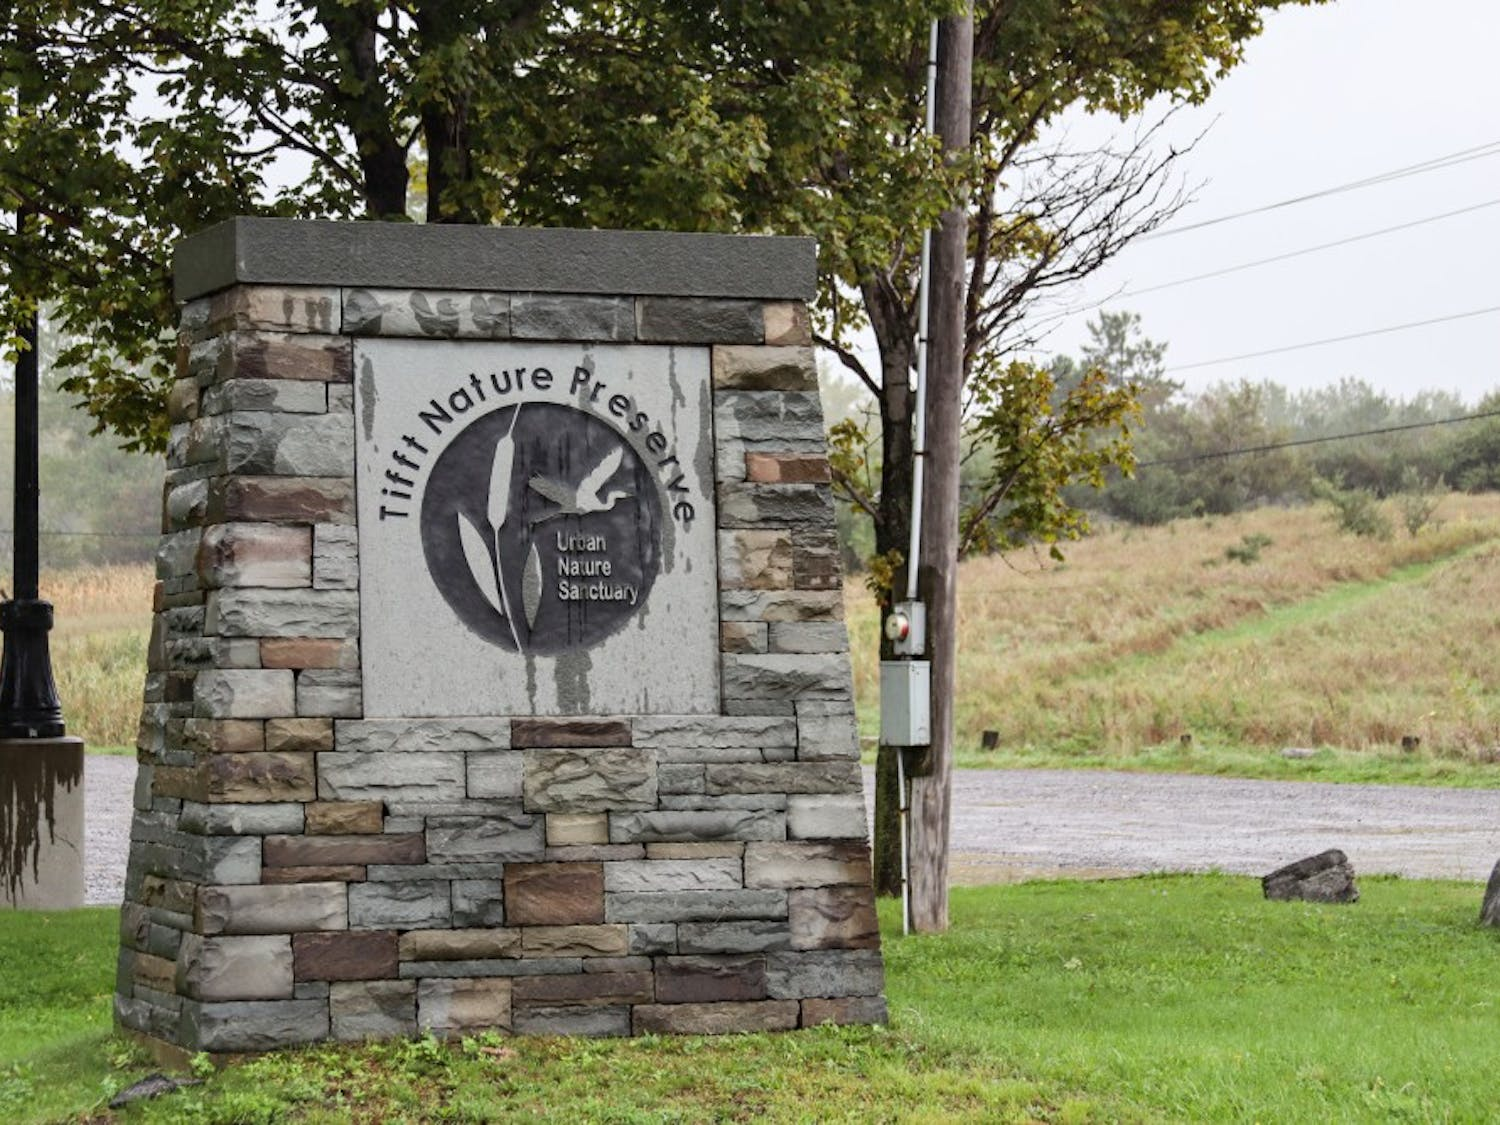 Tifft Nature Preserve is a five-minute drive from downtown Buffalo and located on the Outer Harbor.